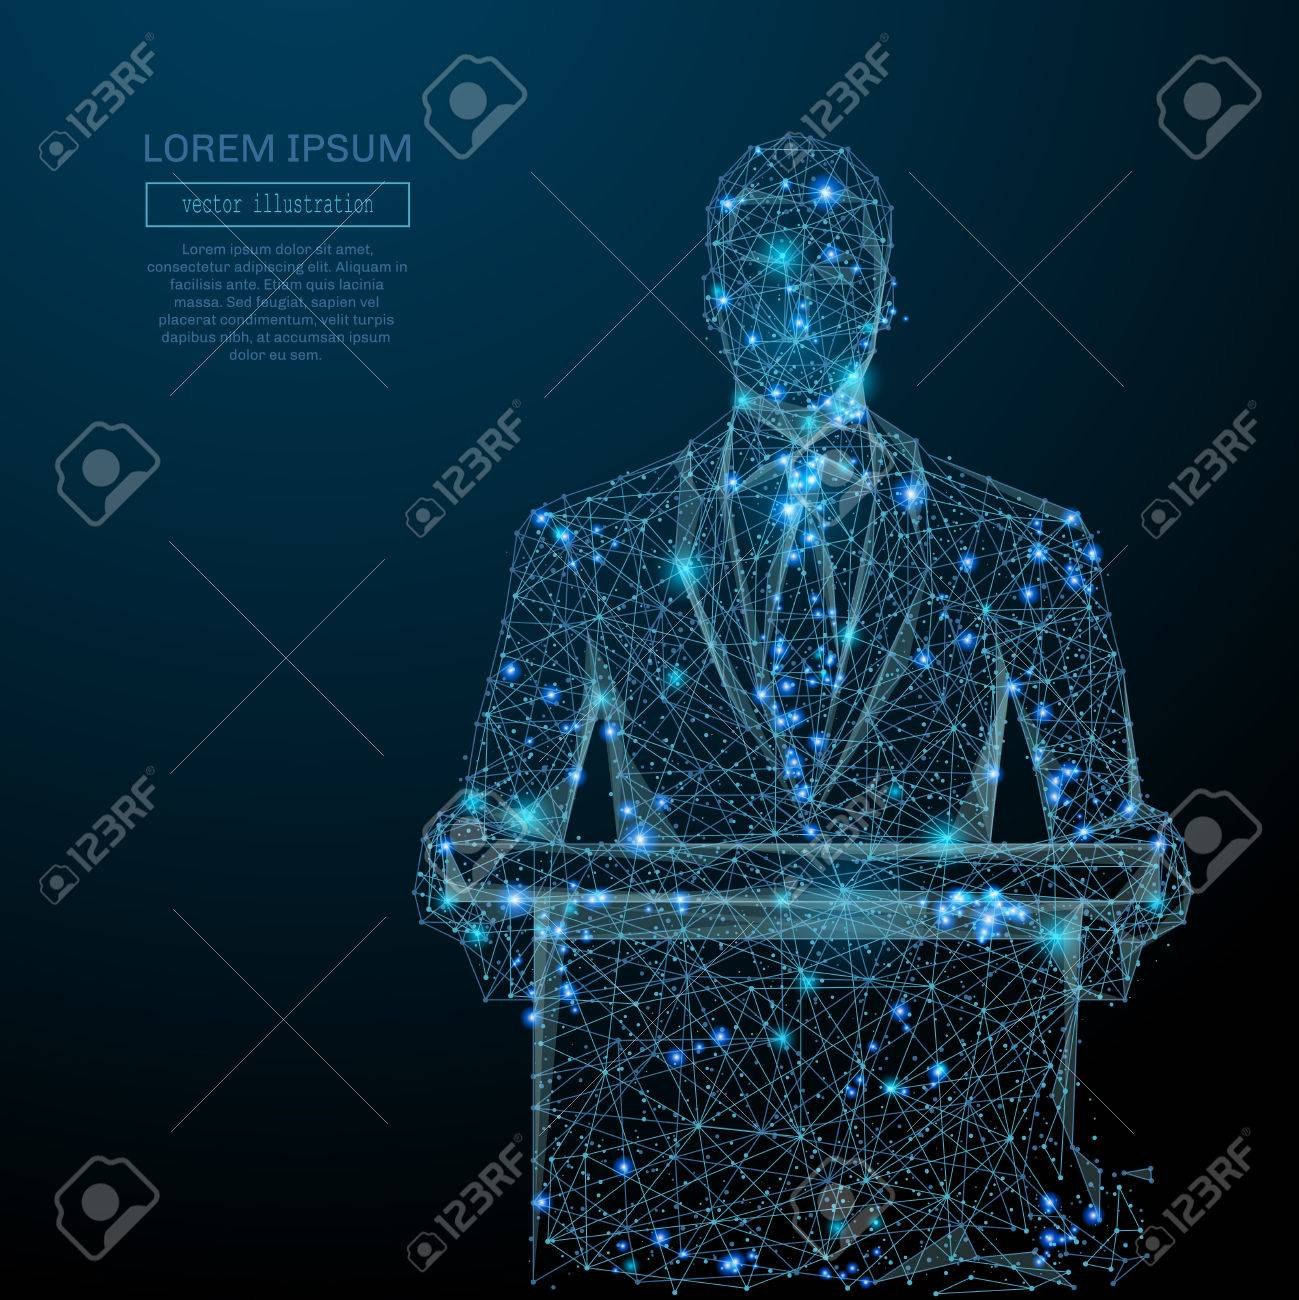 Abstract image of a business man standing behind rostrum in the form of a starry sky or space, consisting of points, and shapes in the form of planets, stars and universe. wire frame concept. - 75959599